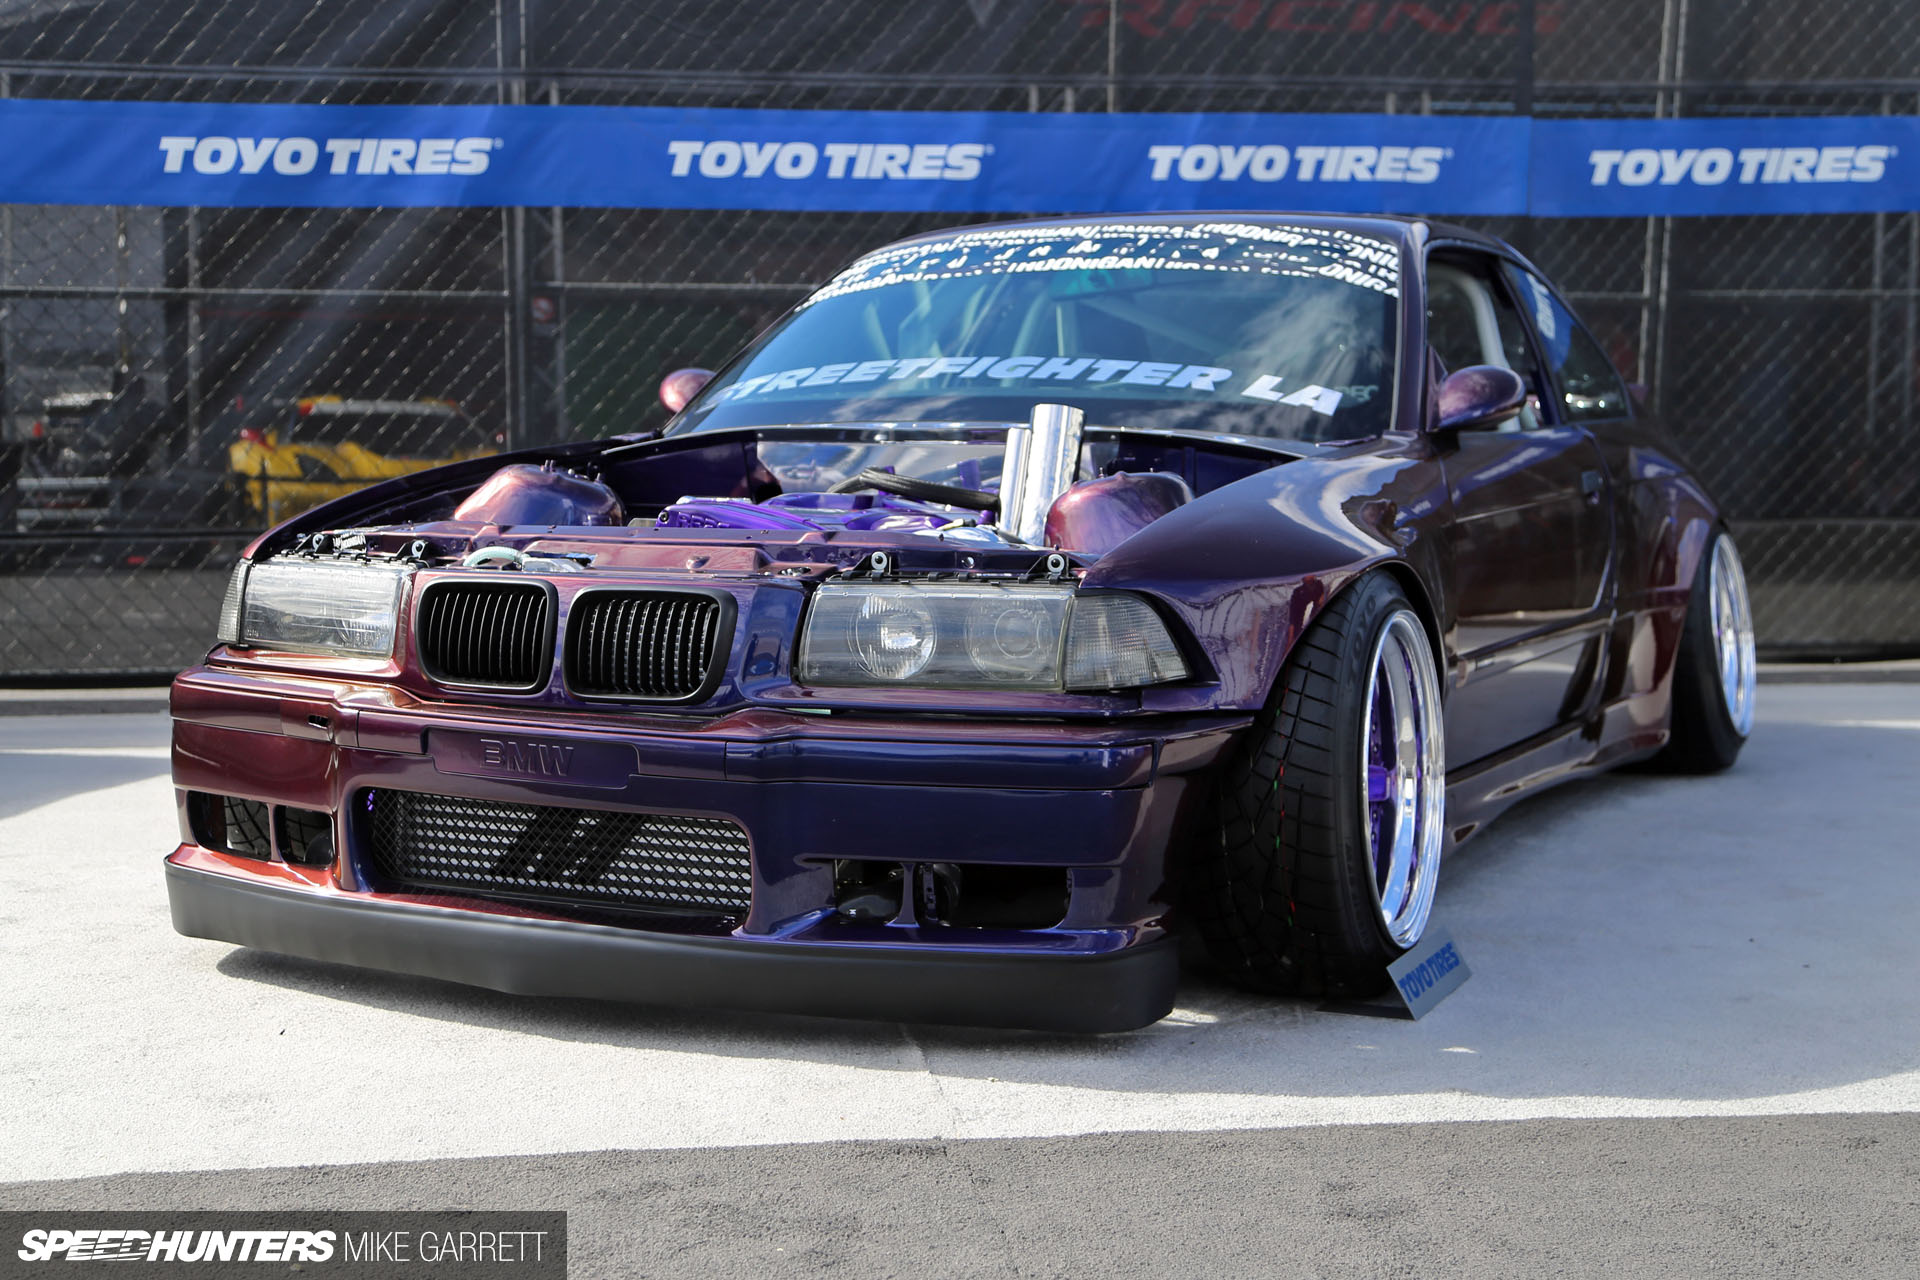 Moteur Store Banne Amazon A Skyline Gt R Trapped In An M3 Body Speedhunters